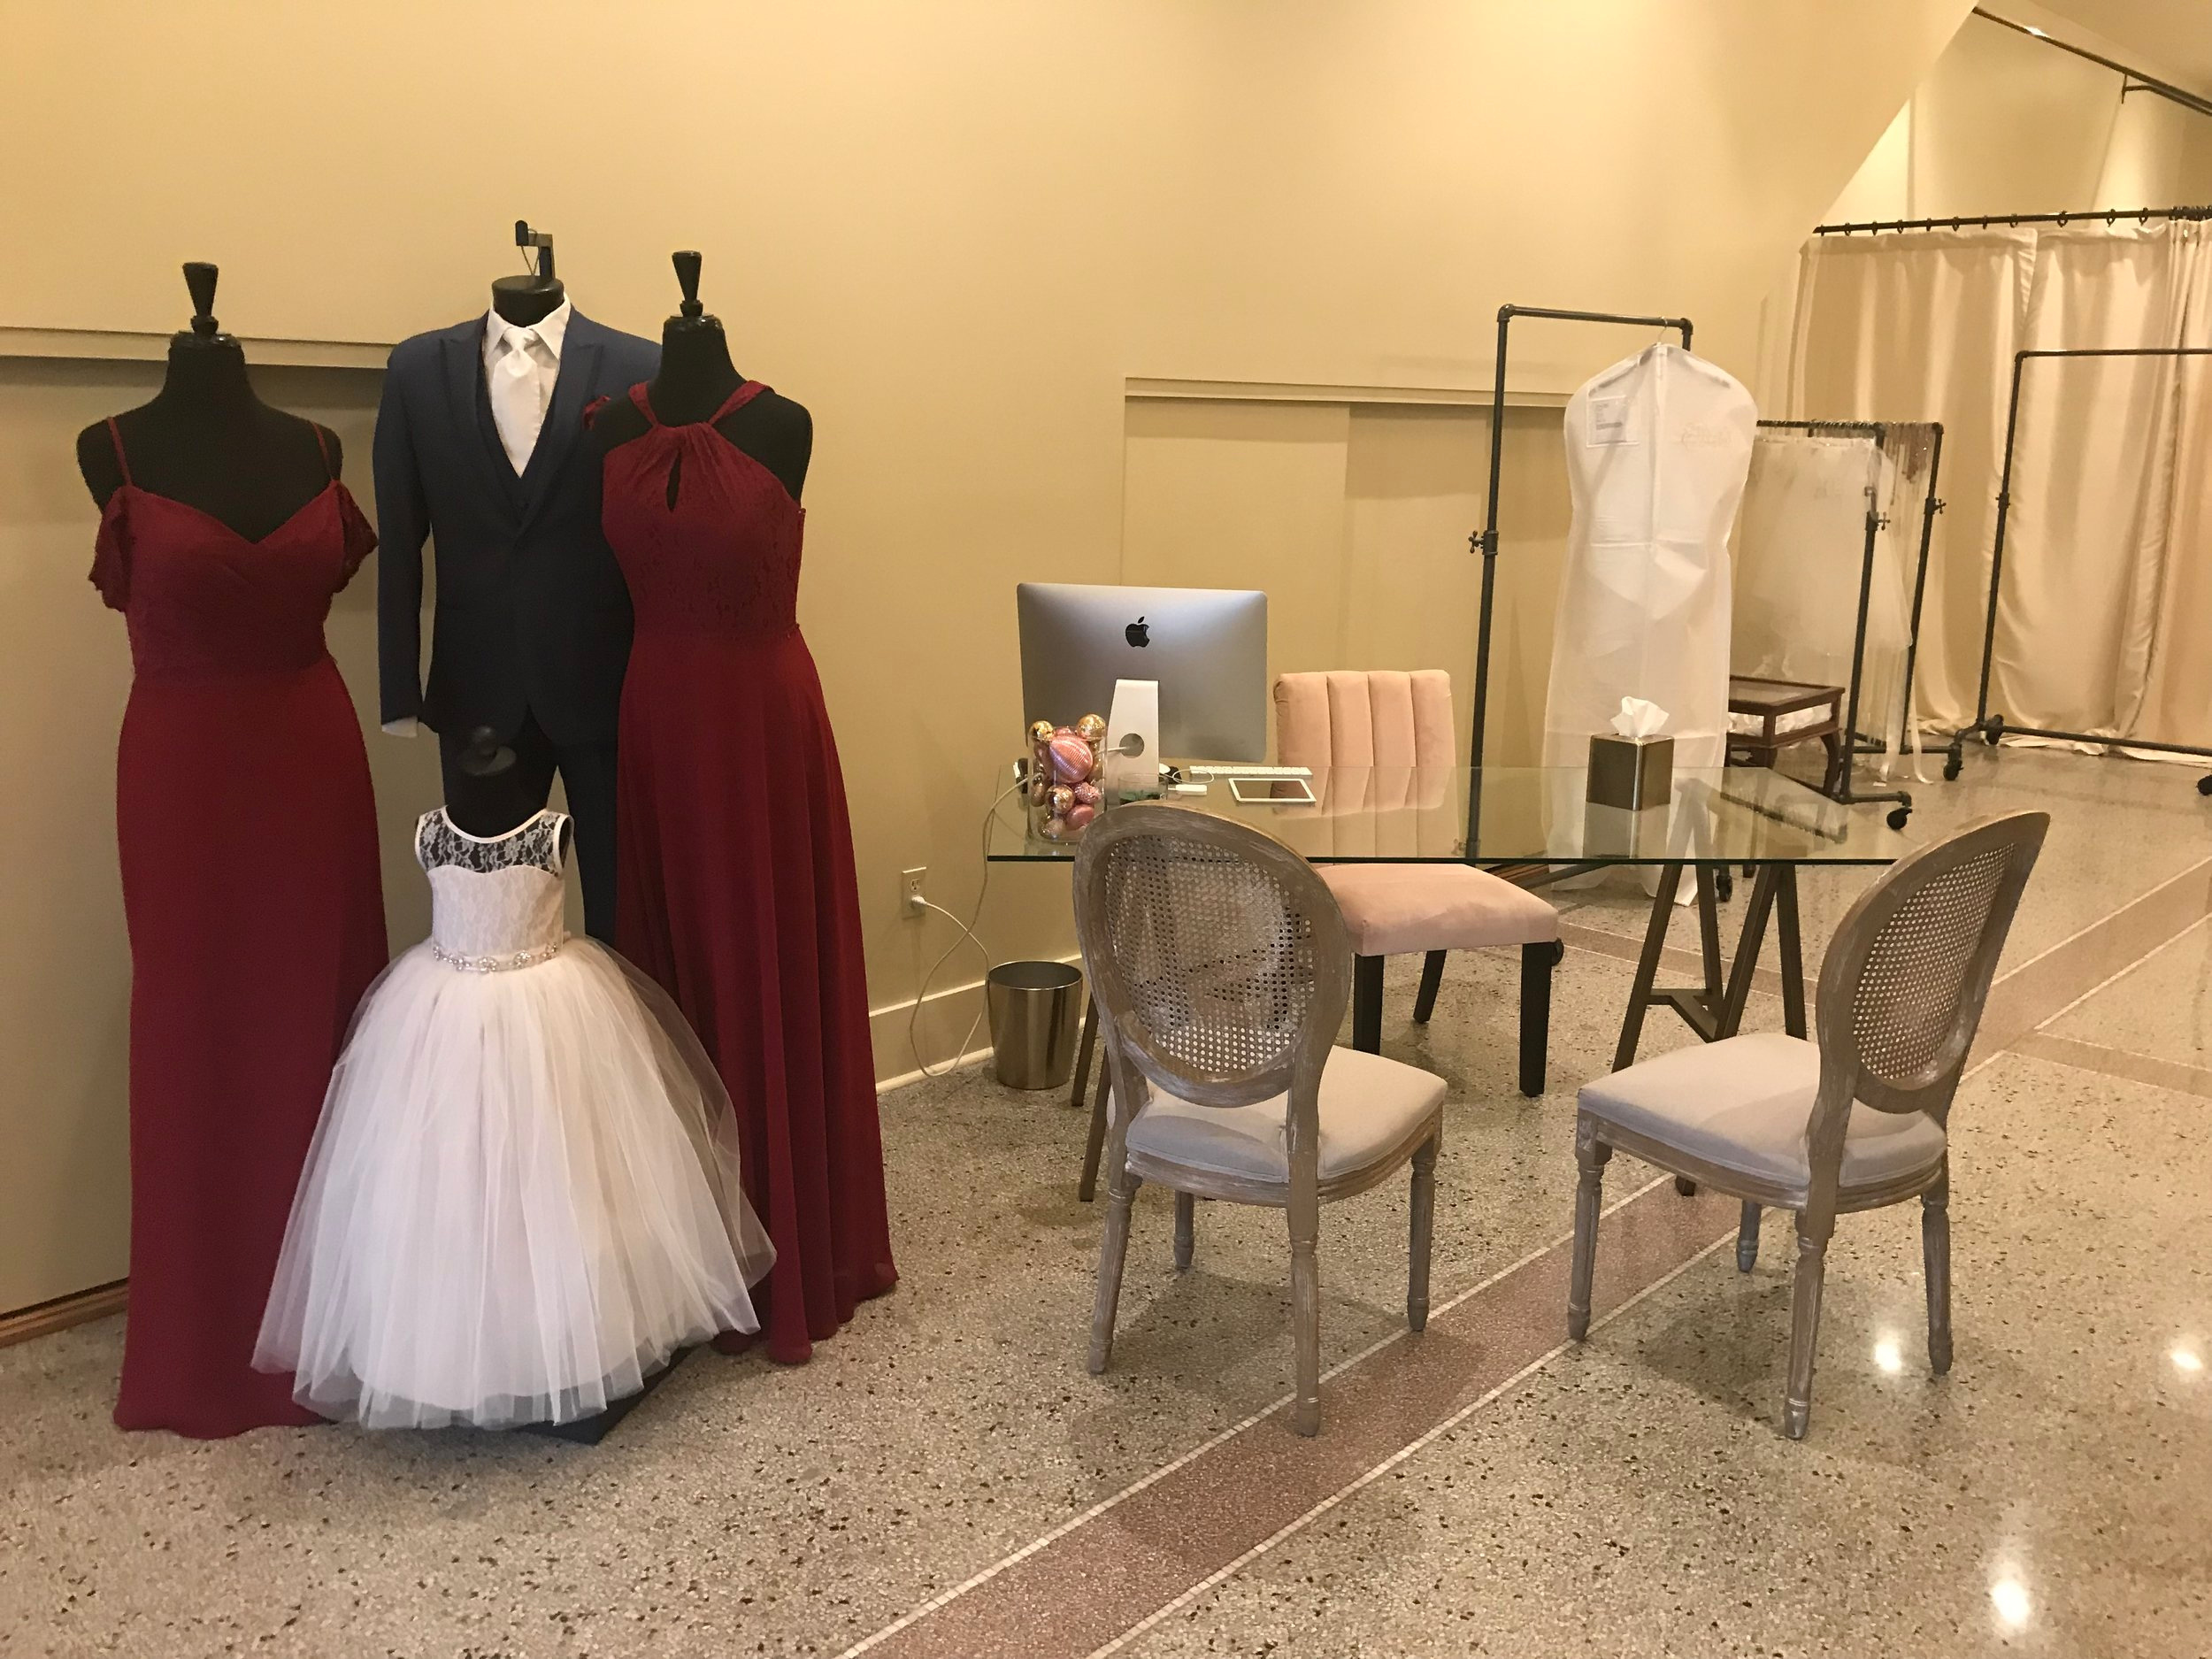 Checkout Area at Ellen's Bridal & Dress Boutique in Wabash, Indiana